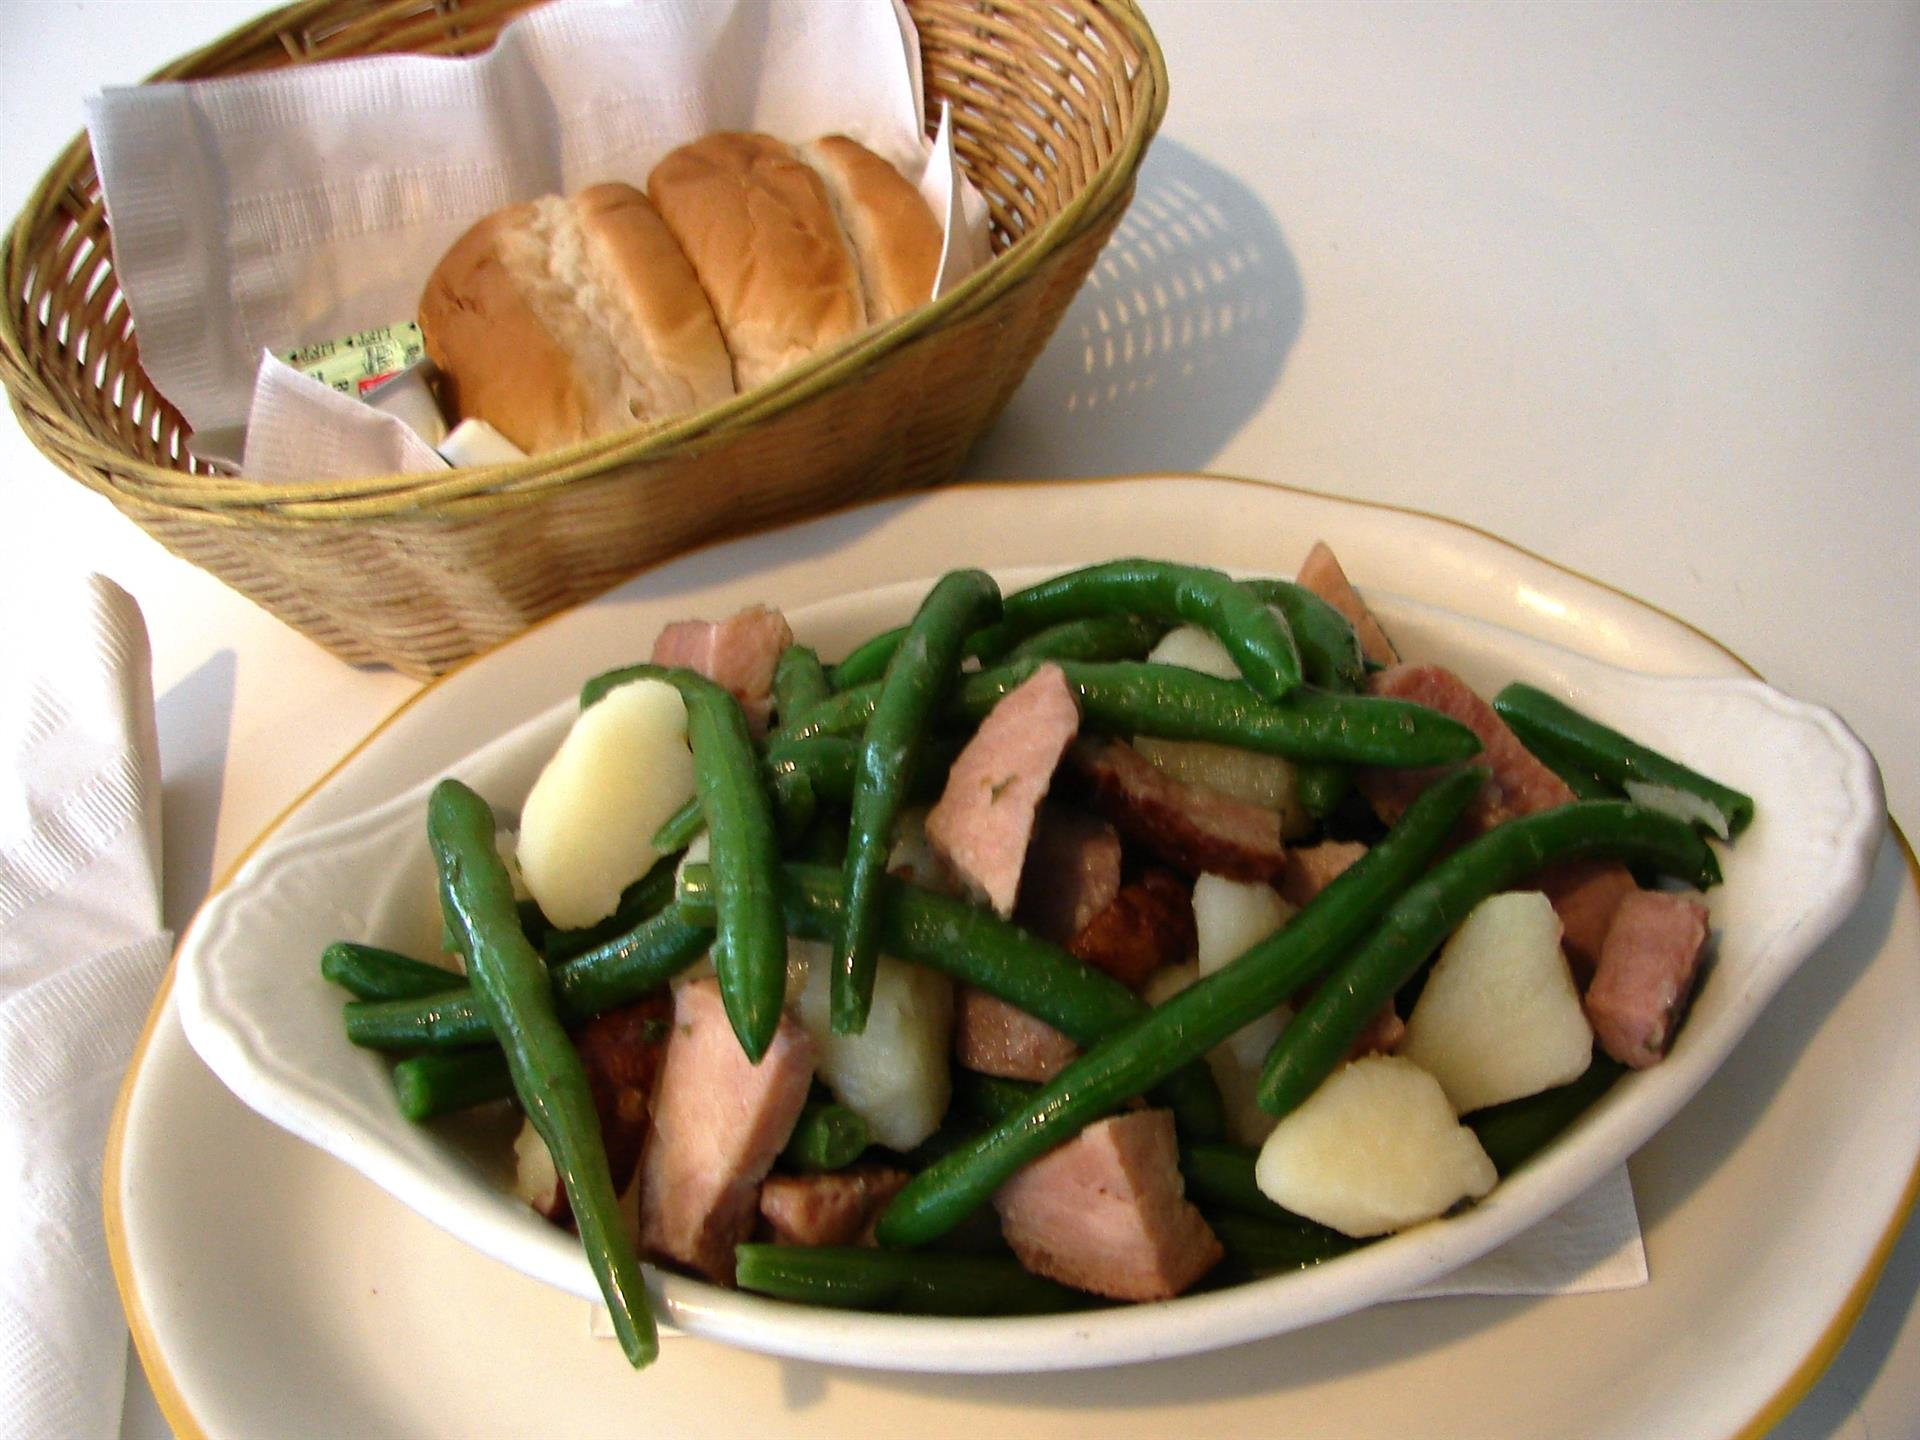 Green bean, pork, potato on white dish with basket of rolls and butter.